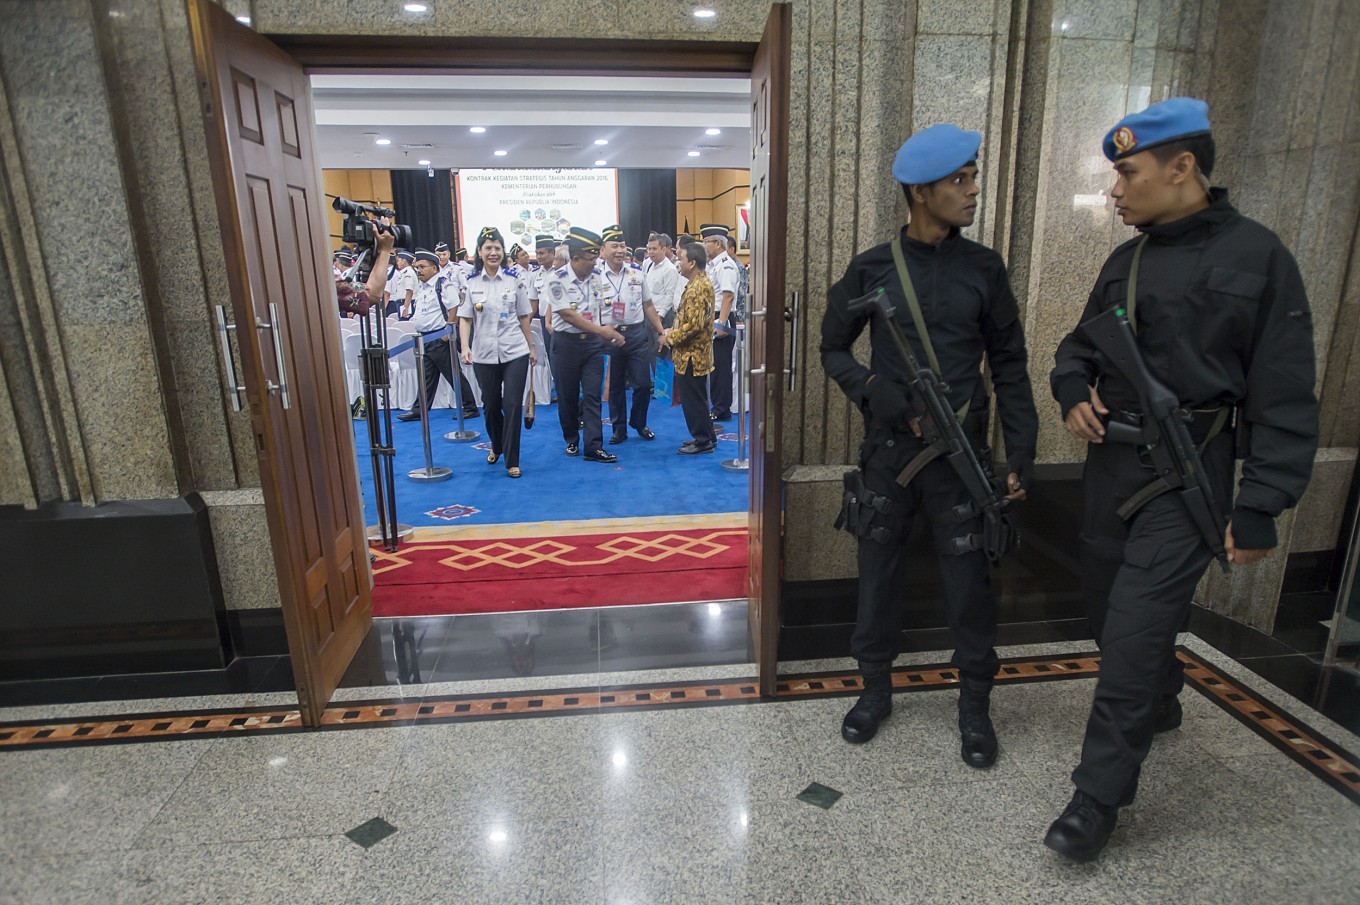 Paspampres members punished for illegal gun purchase from US: Palace